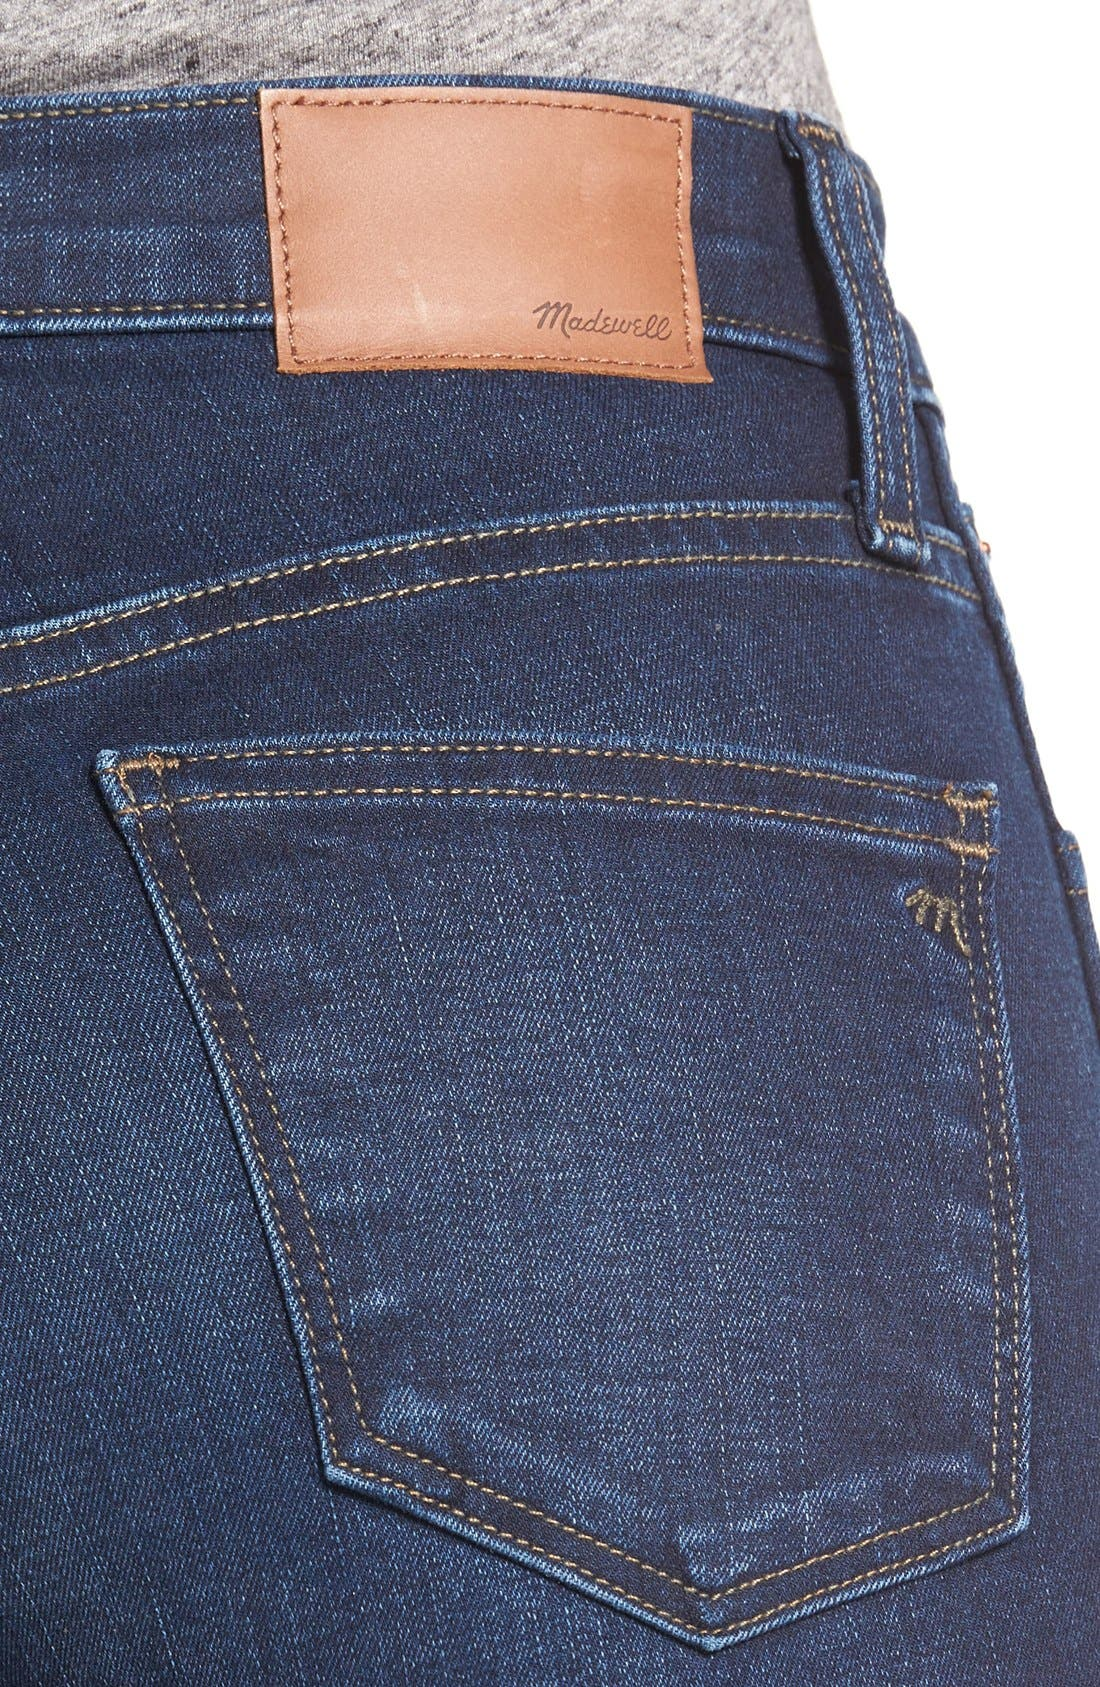 10-Inch High-Rise Skinny Jeans,                             Alternate thumbnail 14, color,                             HAYES WASH